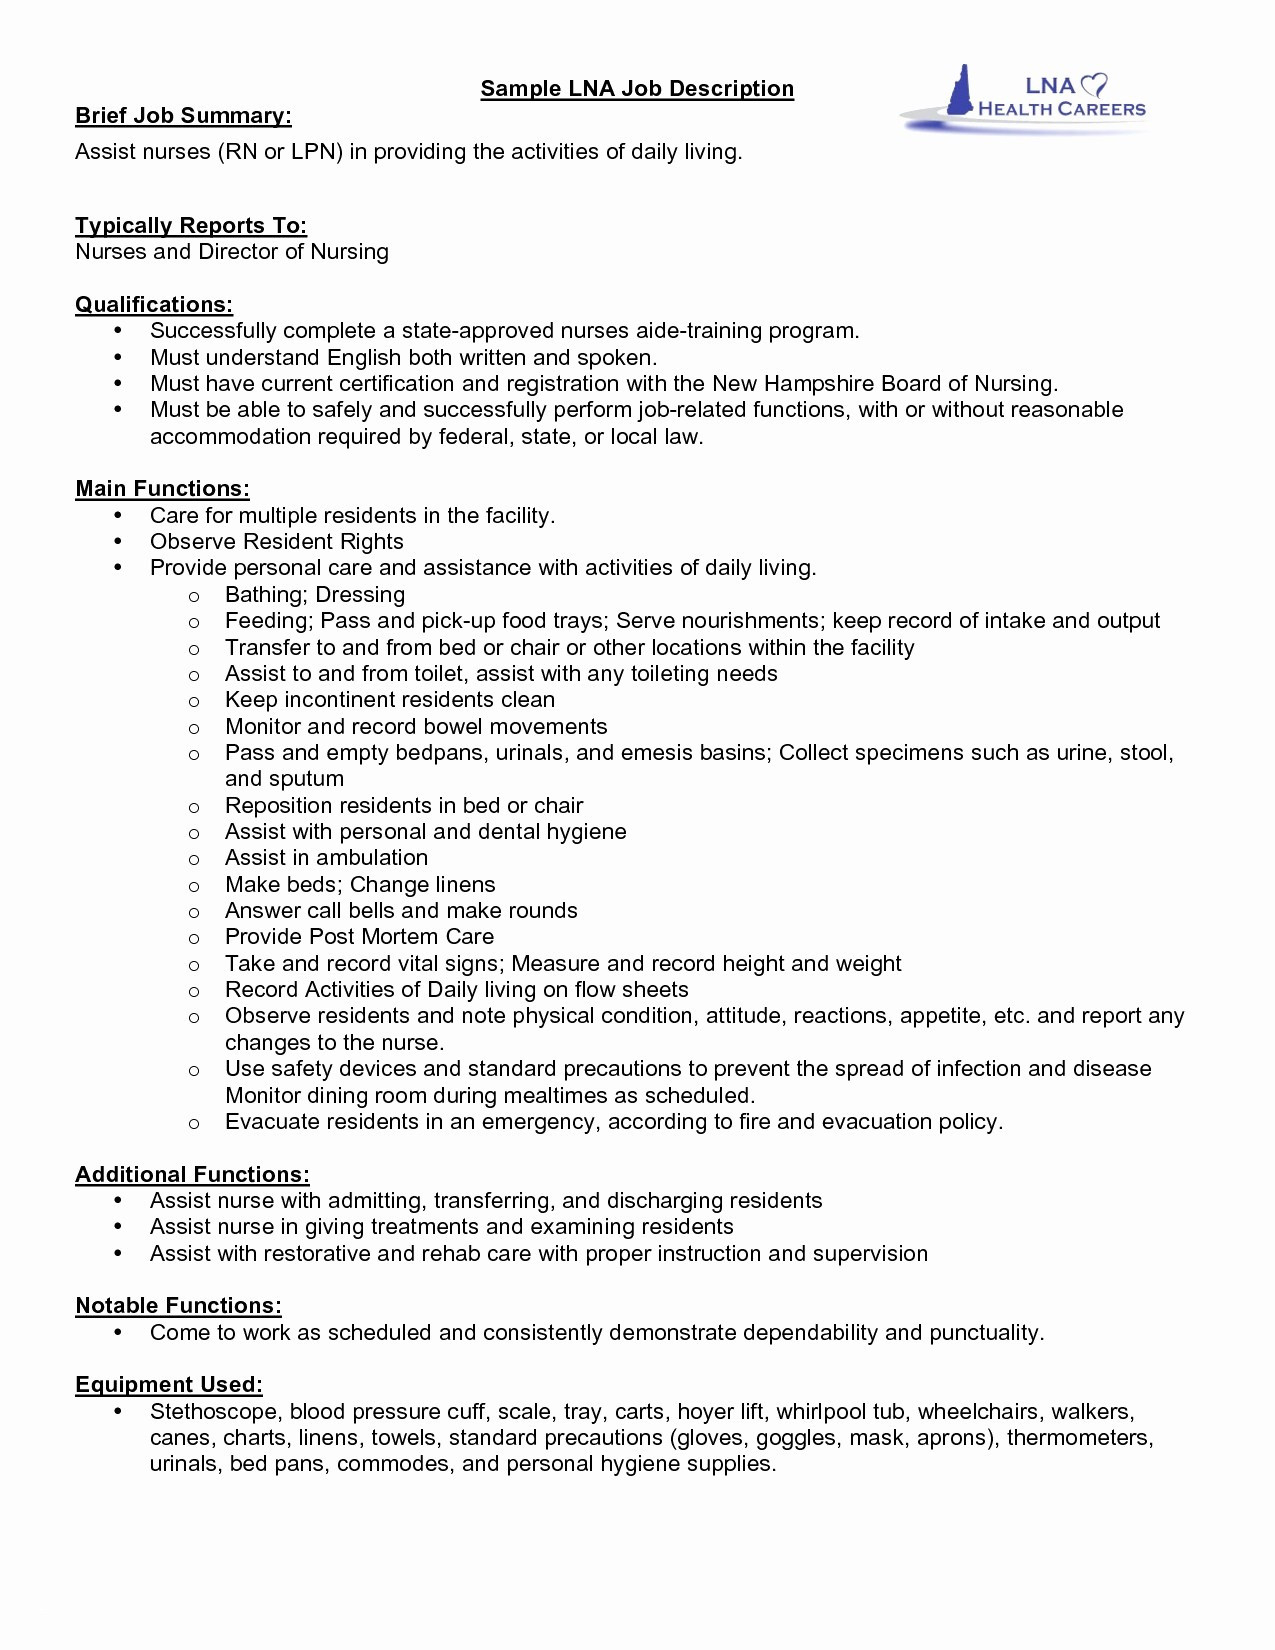 Refinance Letter Template - Sample Nurse Resume with Job Description Personalinjurylovete